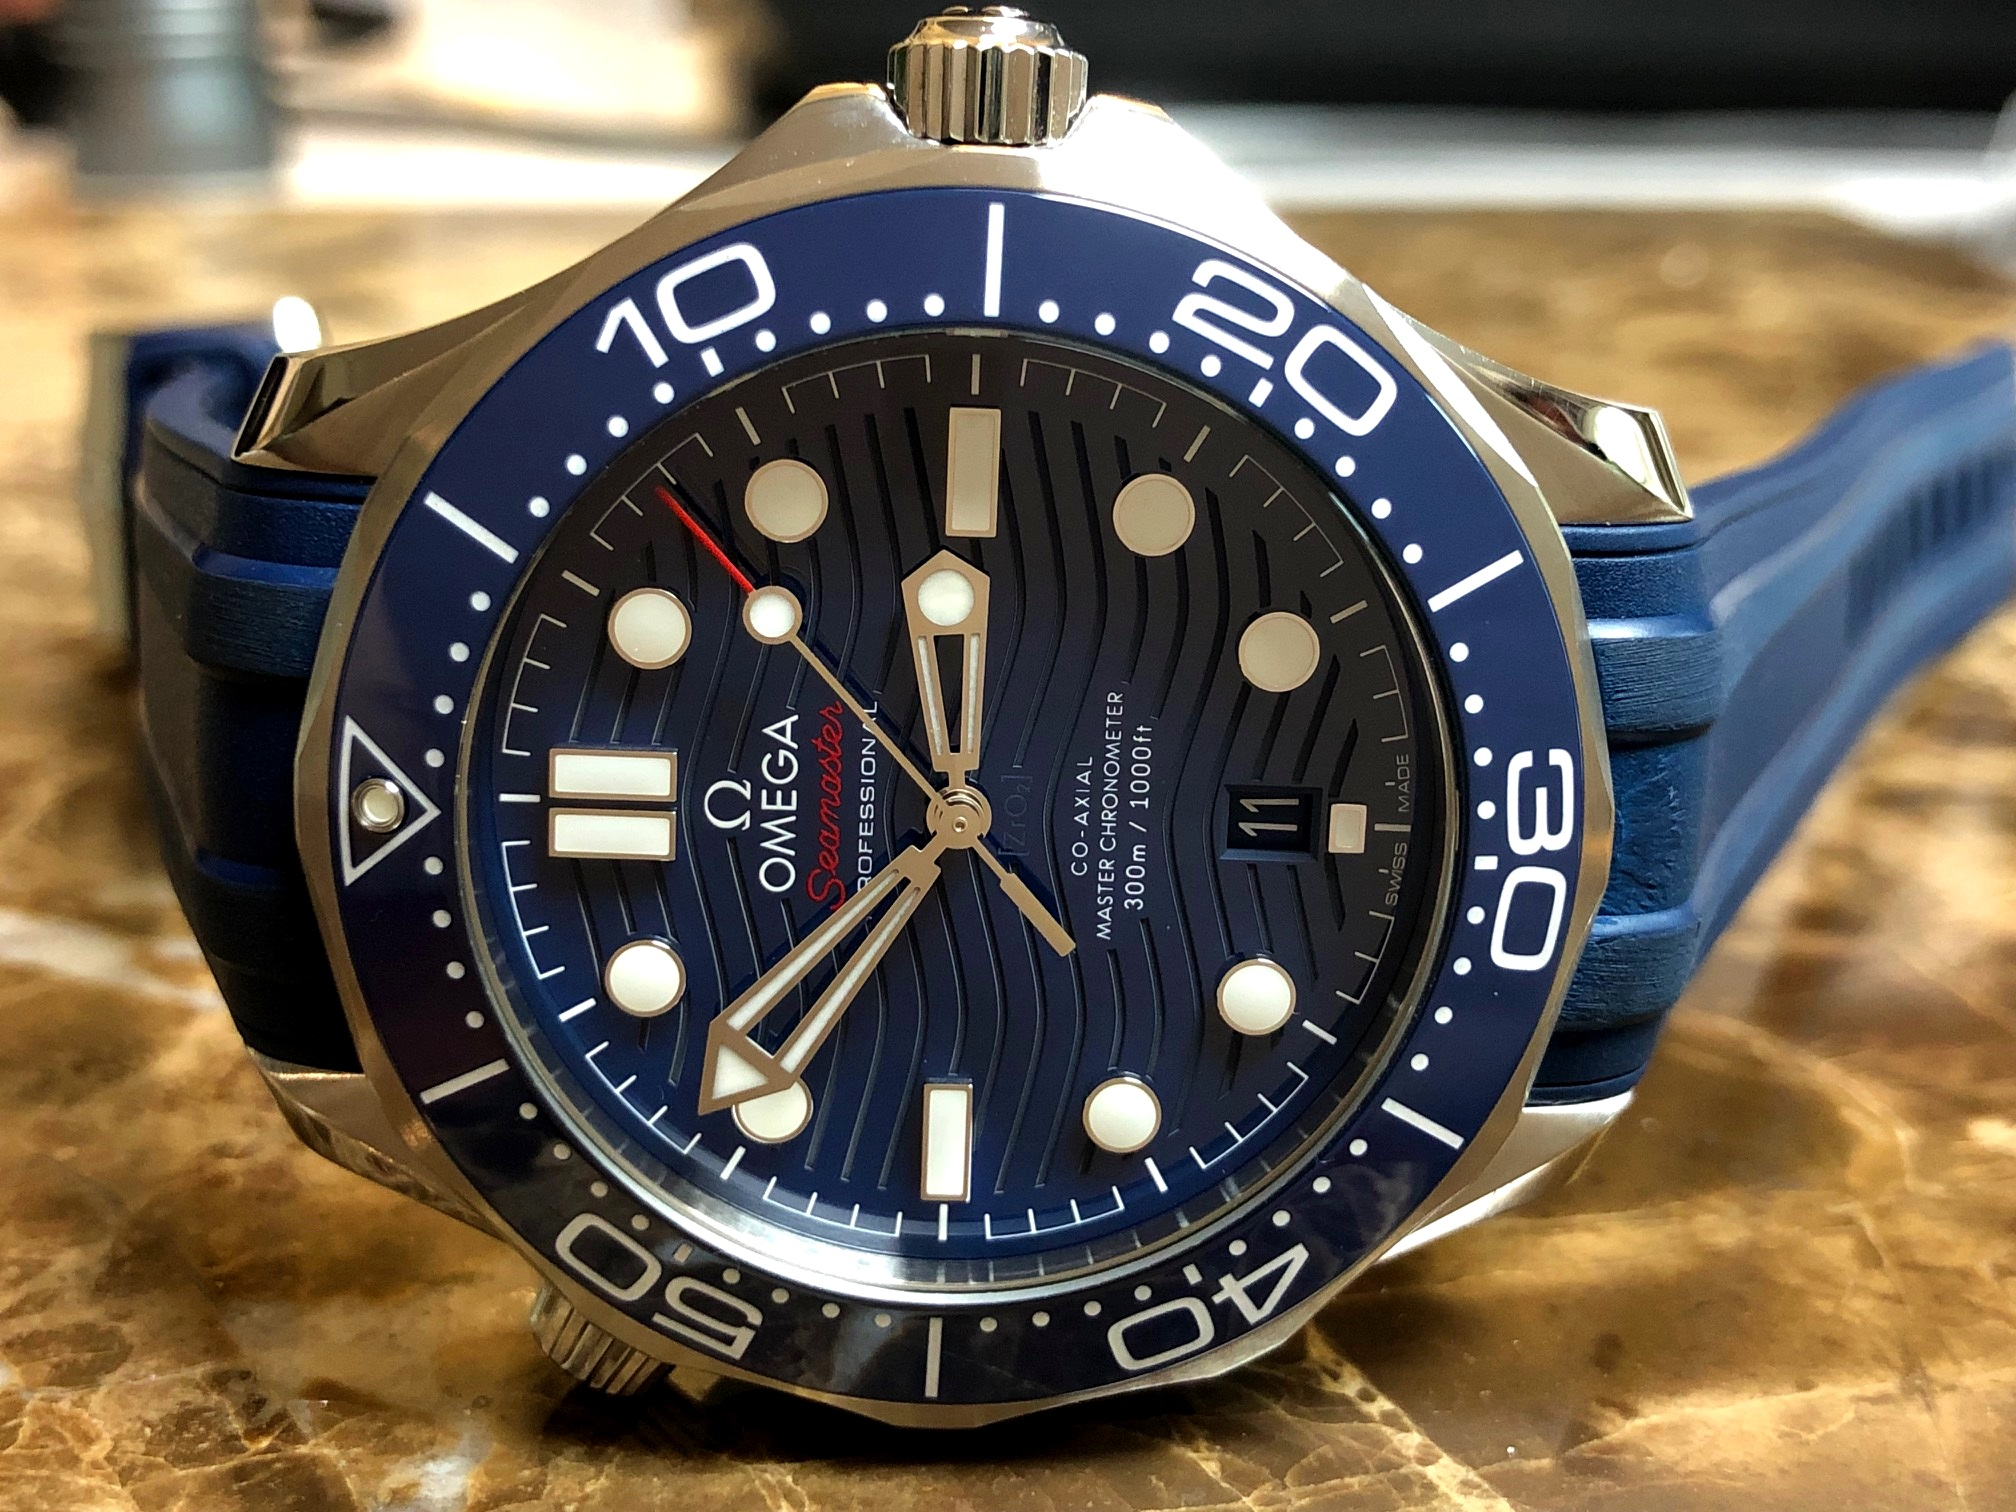 Omega seamaster diver 300m omega co axial master 42 mm blue wave rubber strap box papers 210 for Omega diver